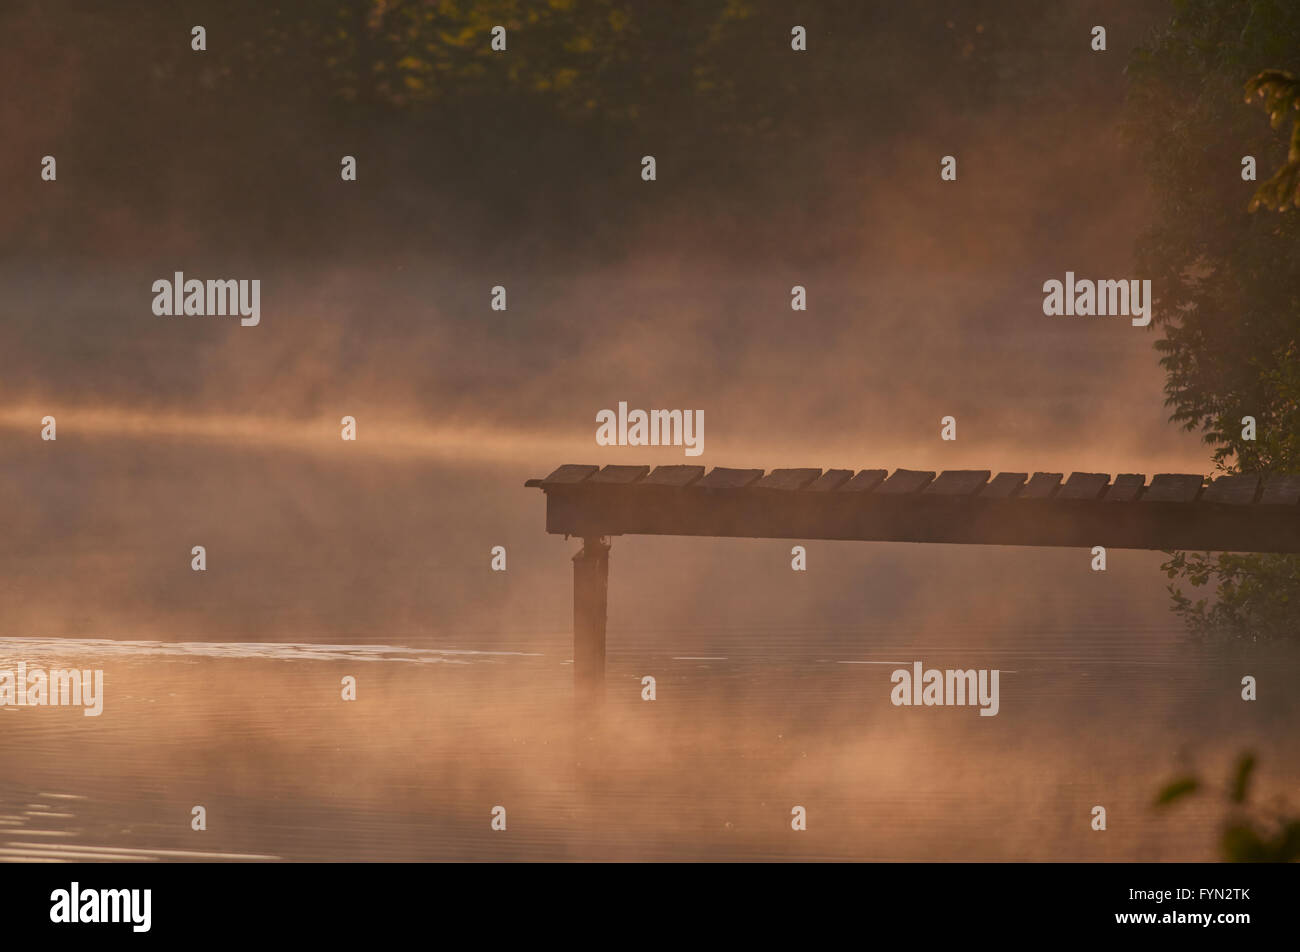 A misty morning on the lake - Stock Image